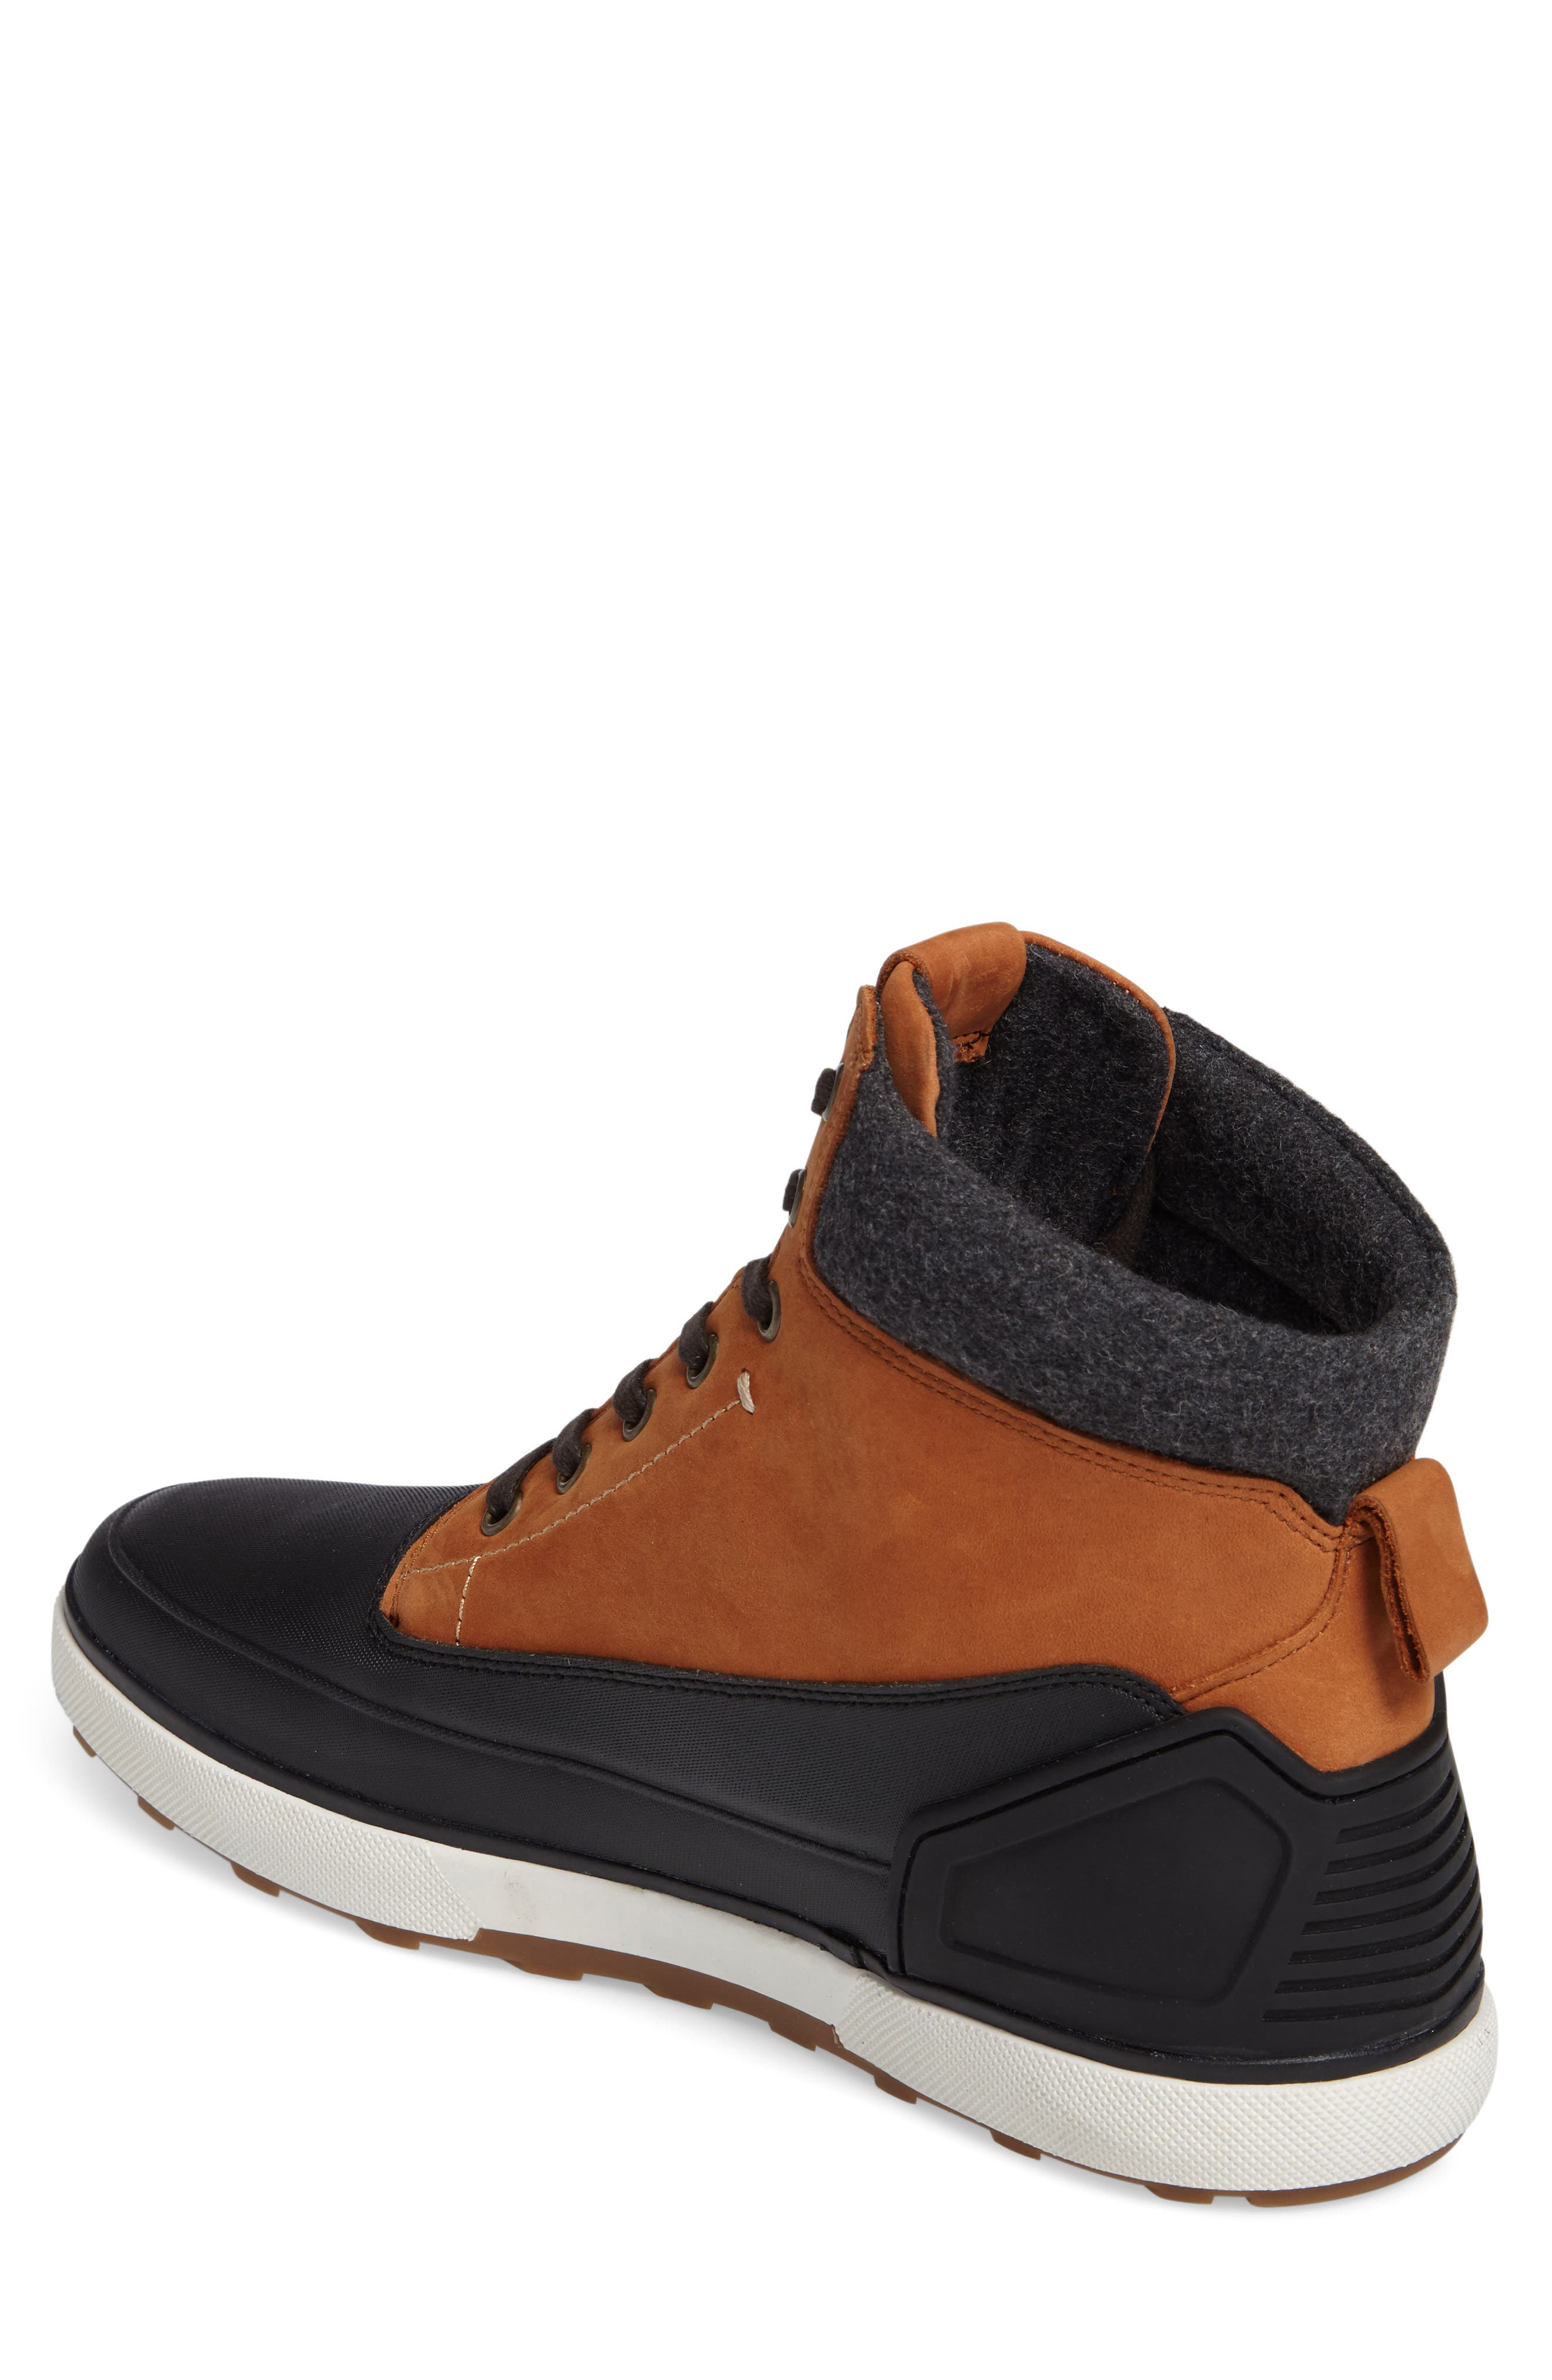 ALDO,                             Benis Boot,                             Alternate thumbnail 2, color,                             240